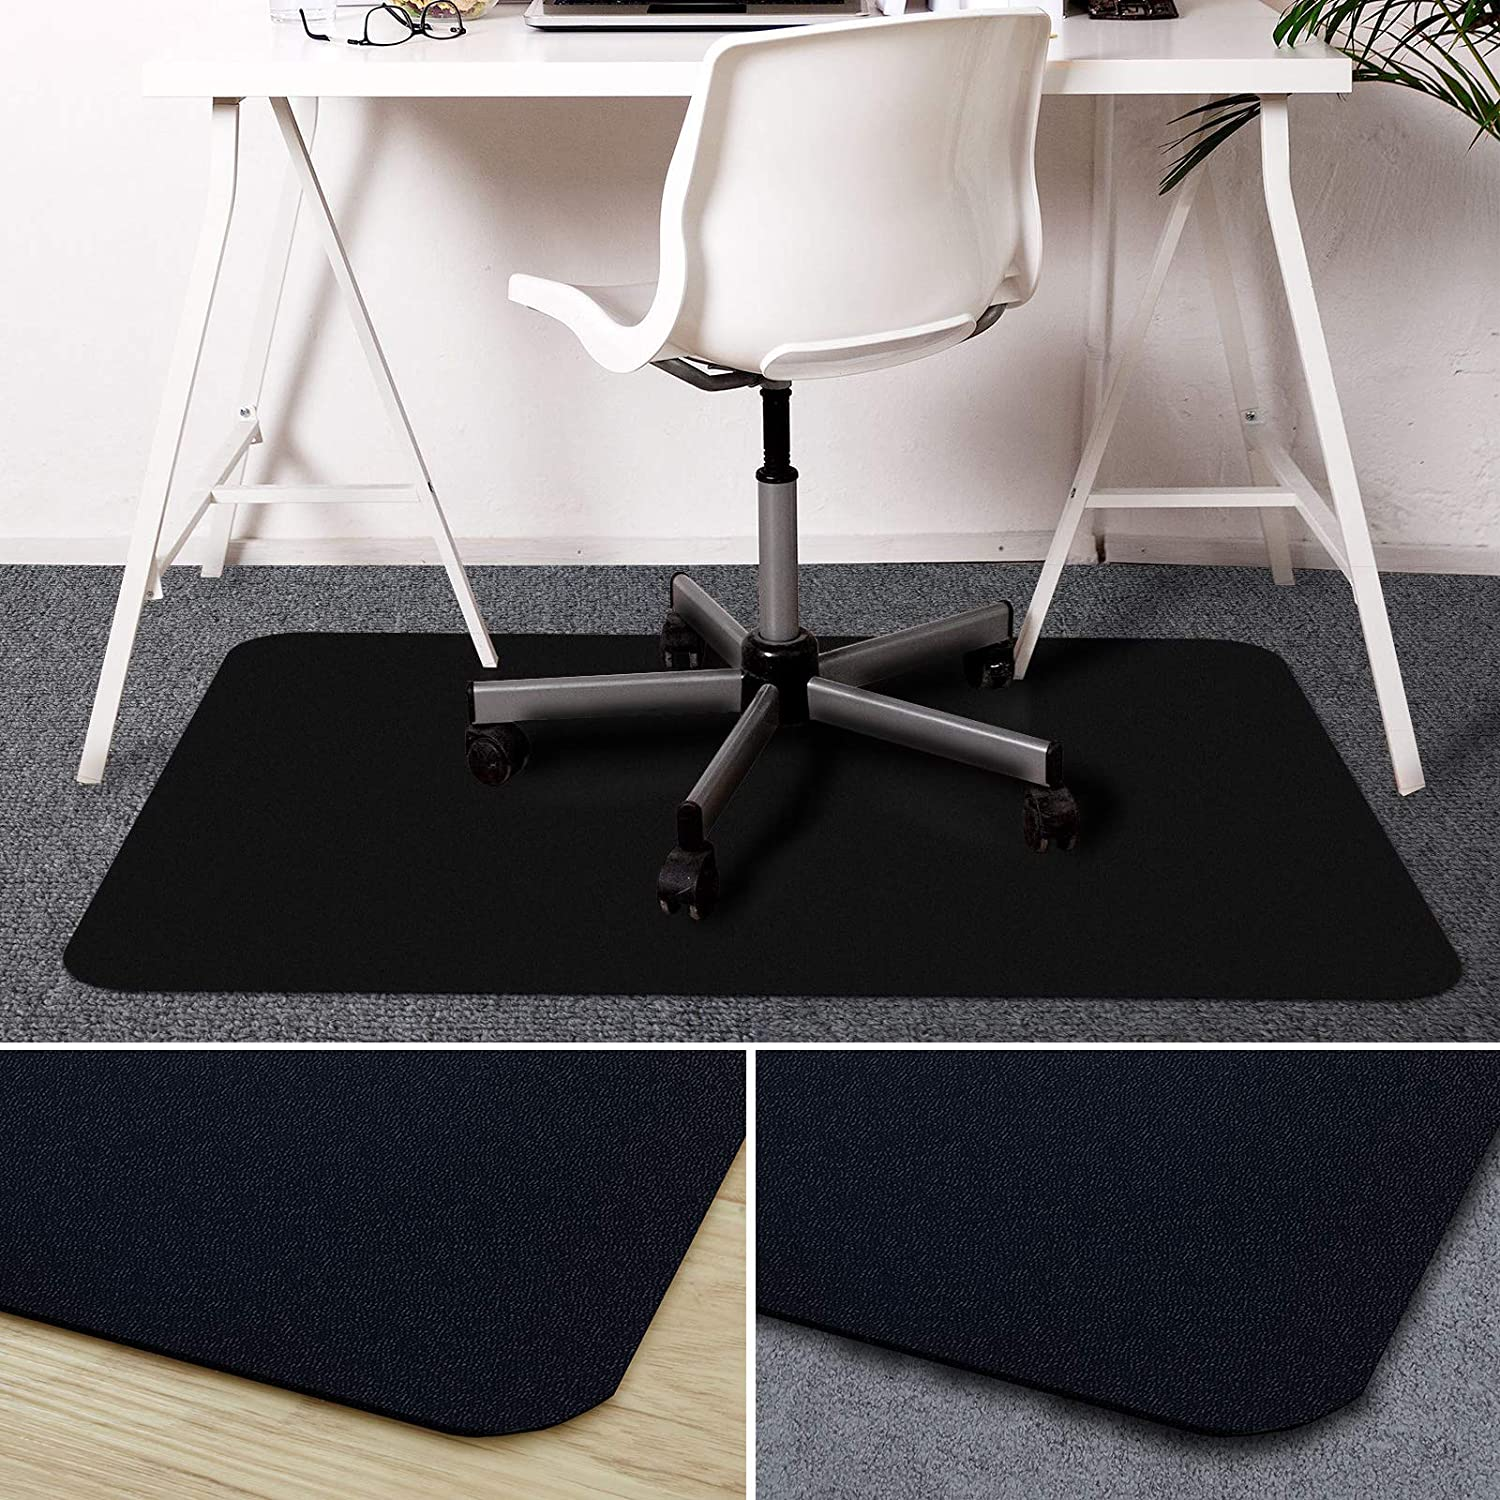 Amazoncom Office Marshal Black Office Chair Mat With Lip 30 X